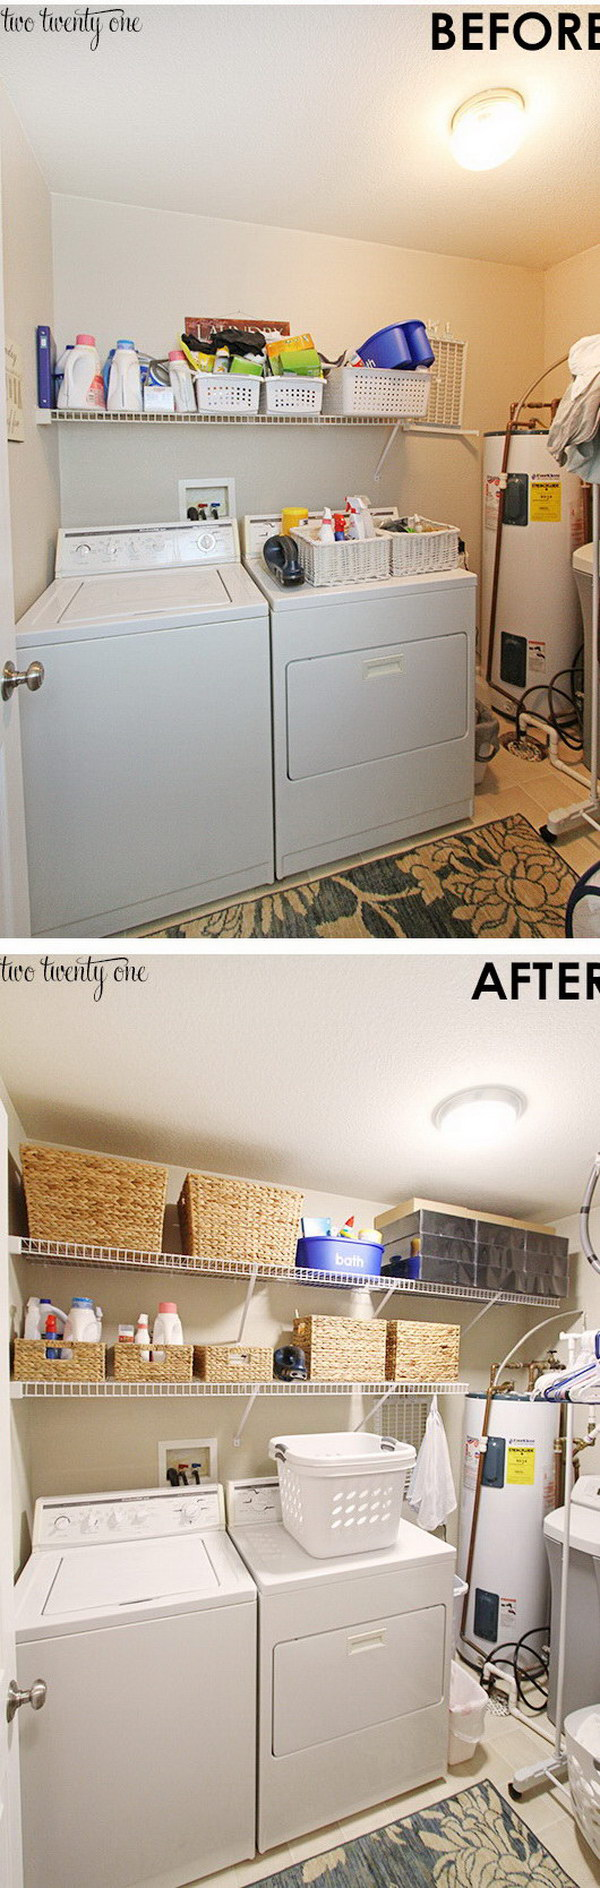 DIY Laundry Room Makeover with More Storage Space.